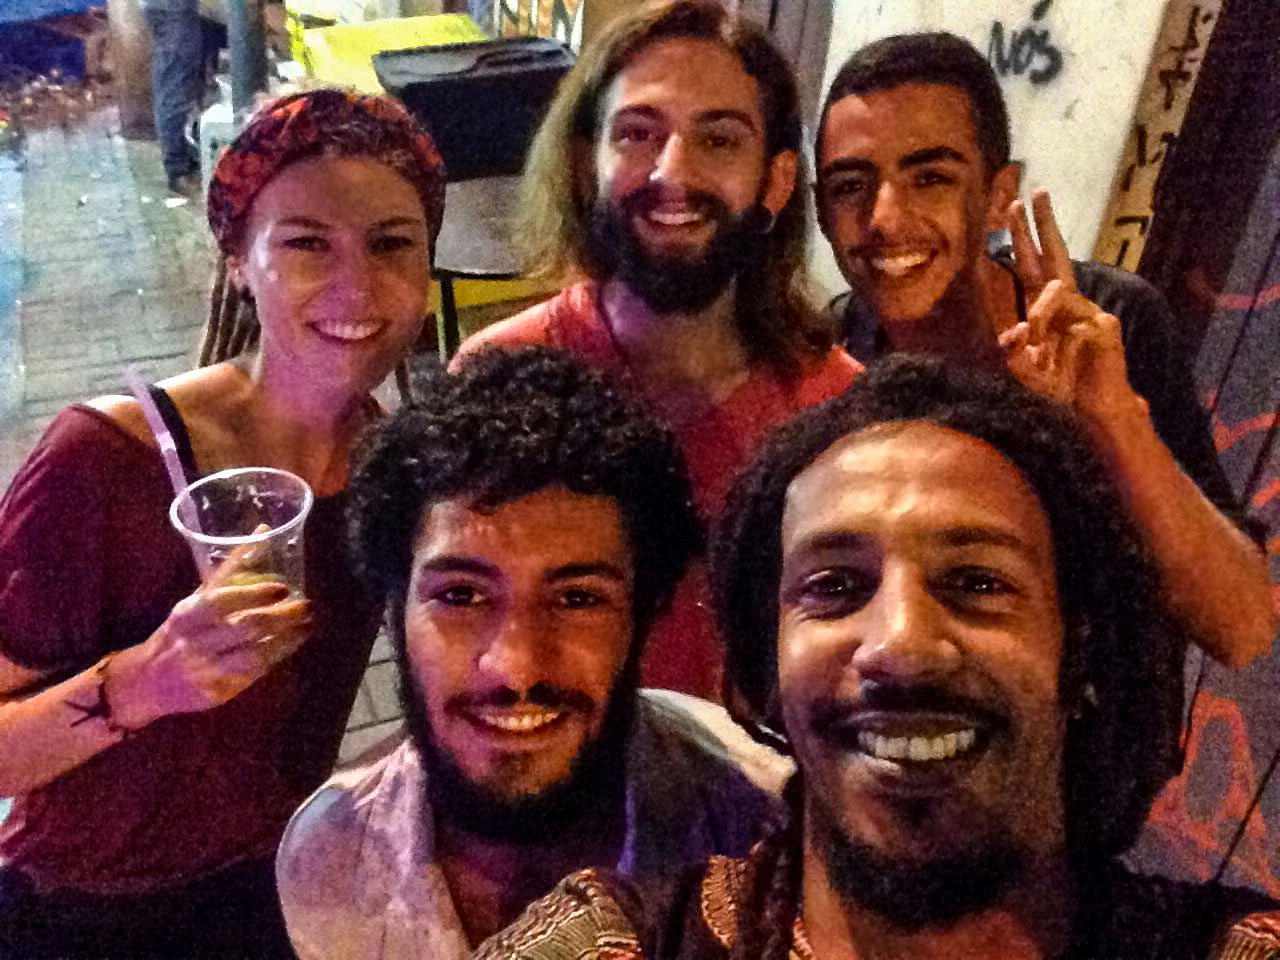 Rasta couple with friends at street party in Rio de Janeiro, Brazil